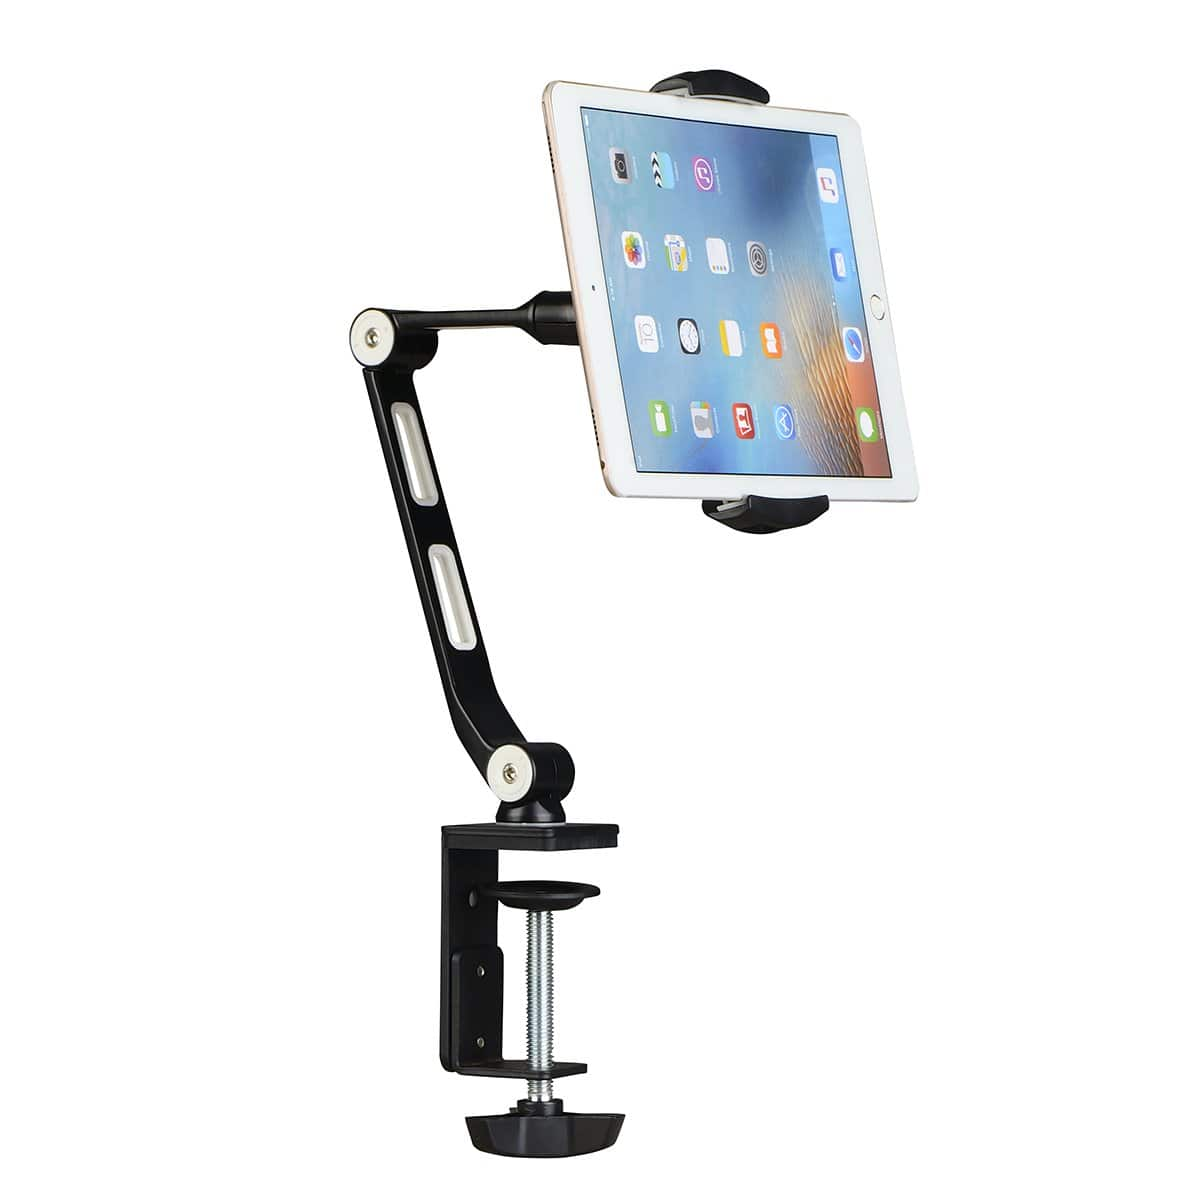 Suptek Aluminum Alloy Cell Phone Desk Mount Stand 360° Tablet Stand and Holders Adjustable for iPad, iPhone, Samsung, Asus and More 4.7-11 inch Devices, Good for Bed, Kit - $19.99